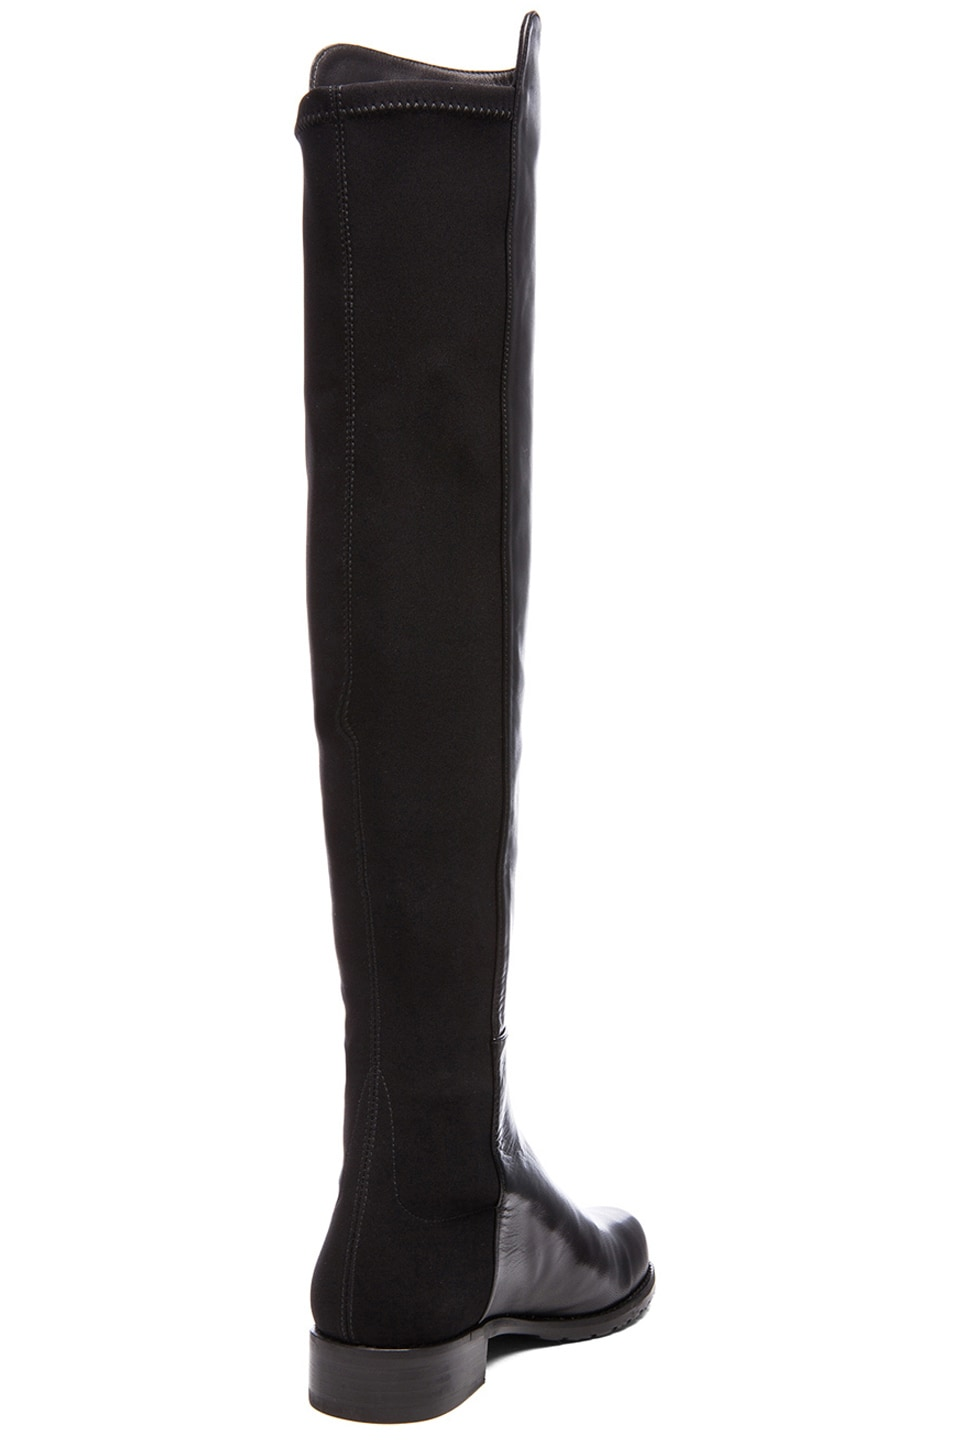 Image 3 of Stuart Weitzman 50/50 Leather & Neoprene Boots in Black